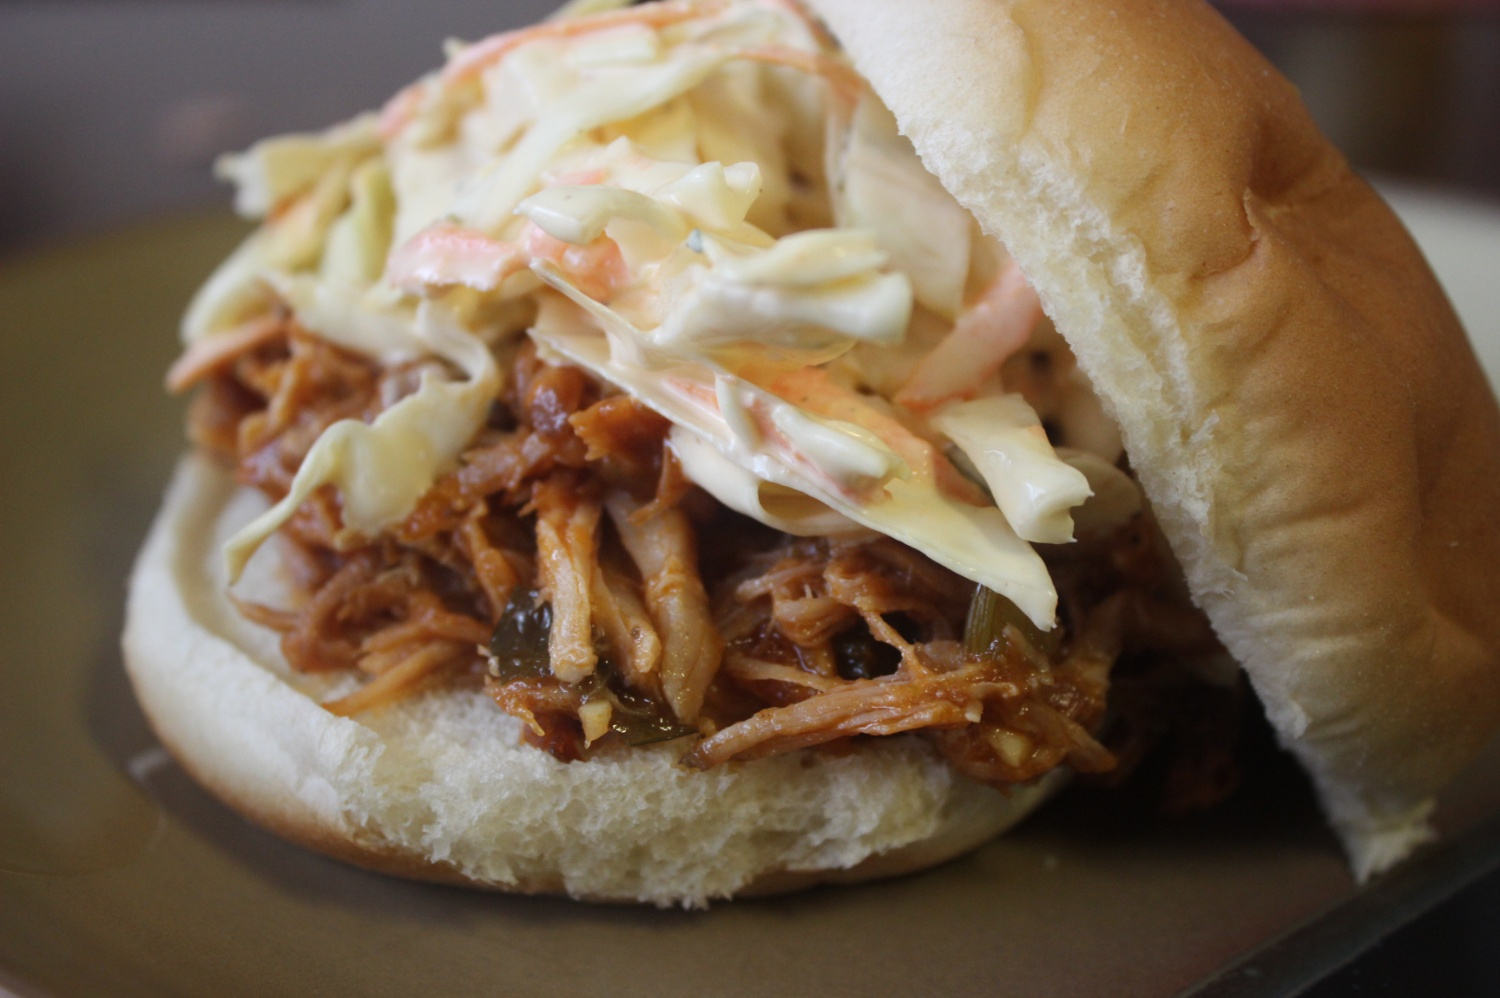 Awesome Pulled Pork BBQ mommyluvs2cook